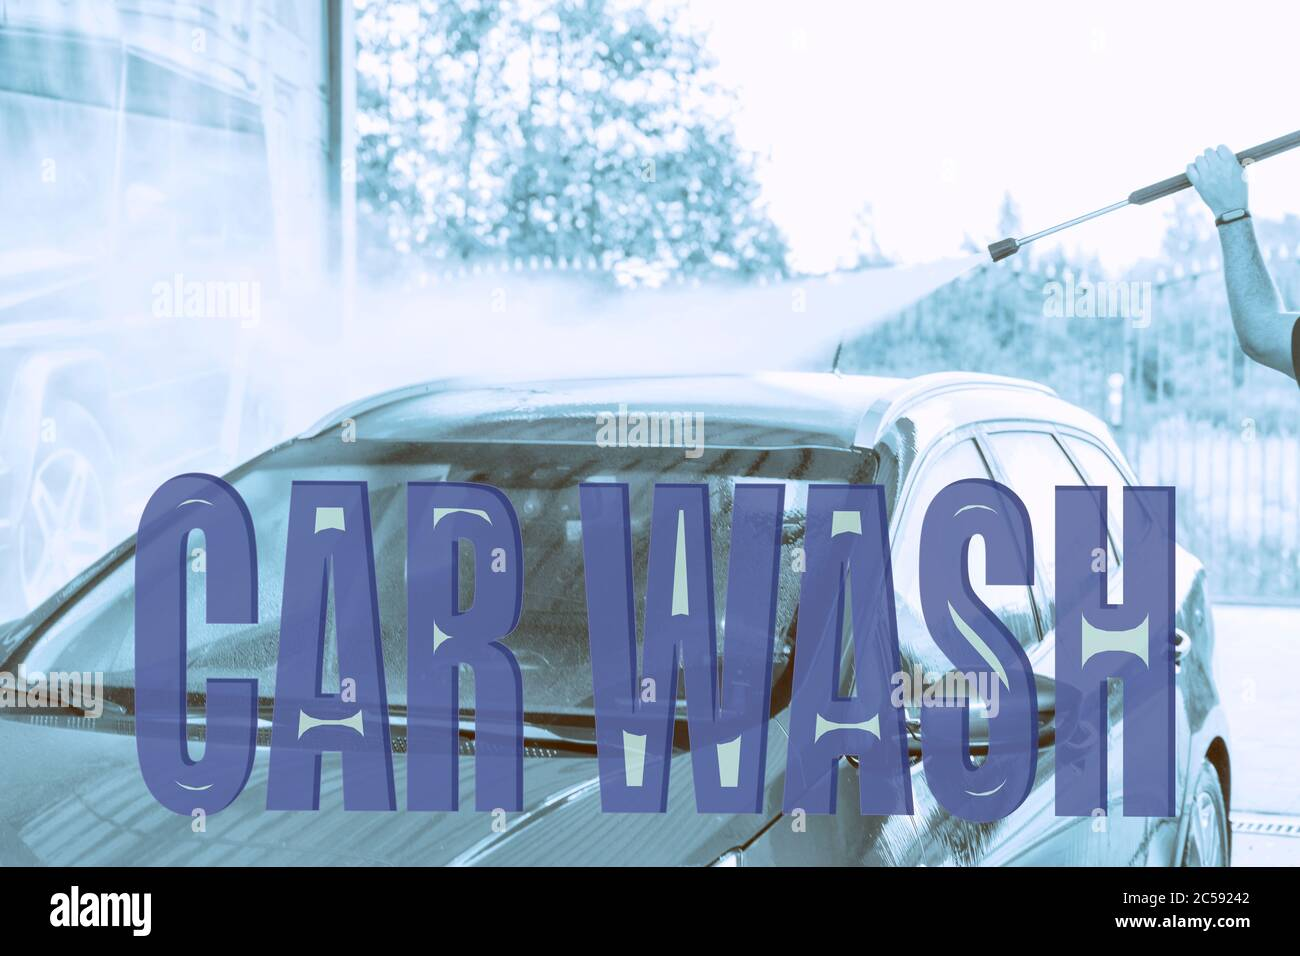 Text Car Wash On The Background Of A Car Wash With A Gun For Washing The Car Stock Photo Alamy